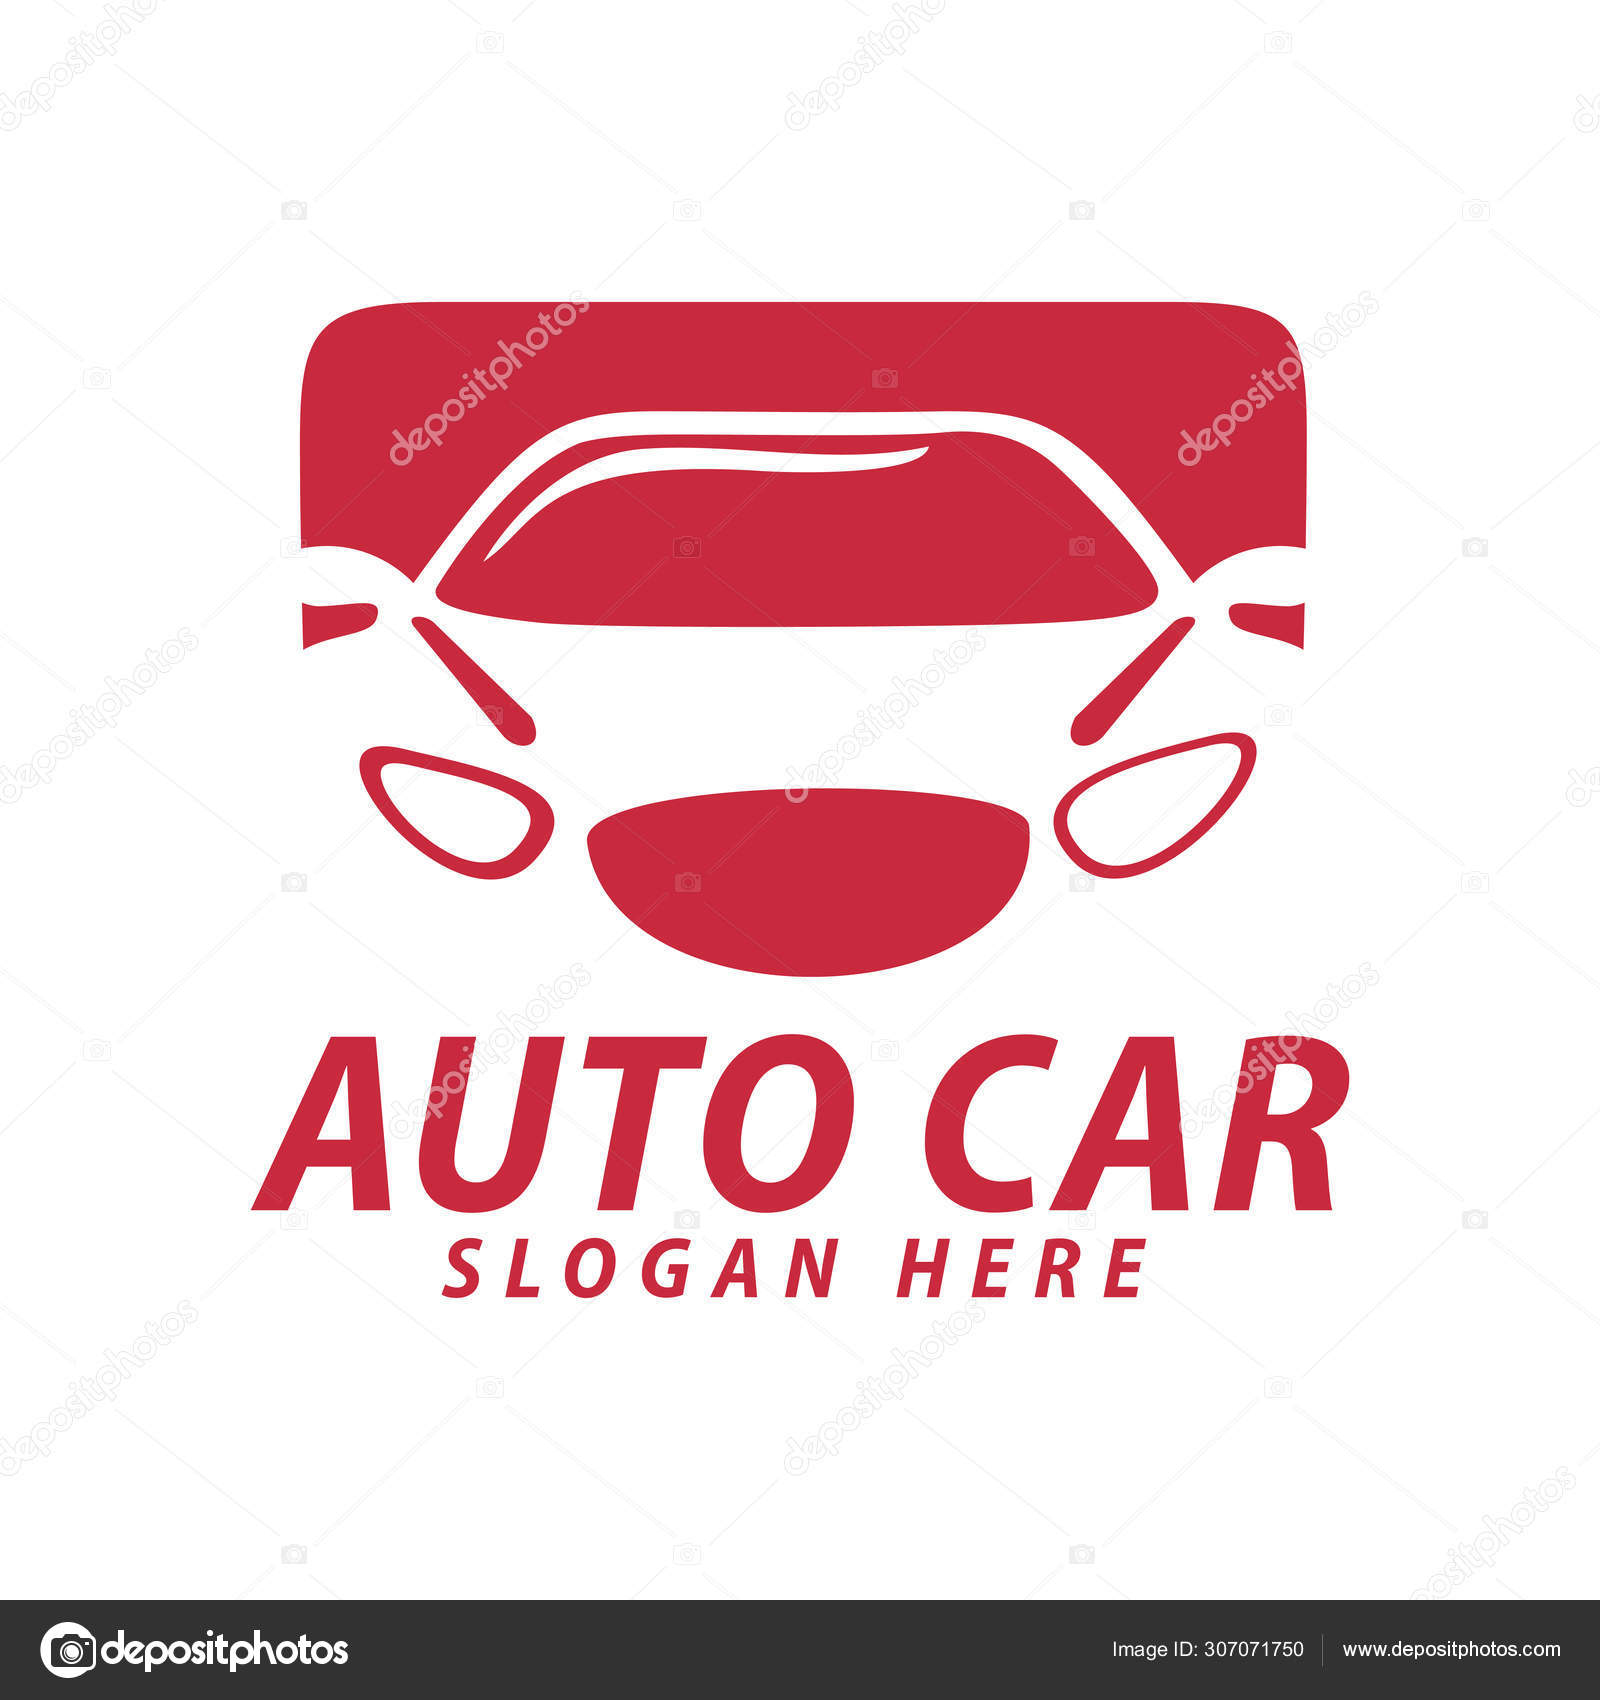 Automotive Car Repair Garage Logo Design Concept Template Stock Vector C Stwst 307071750